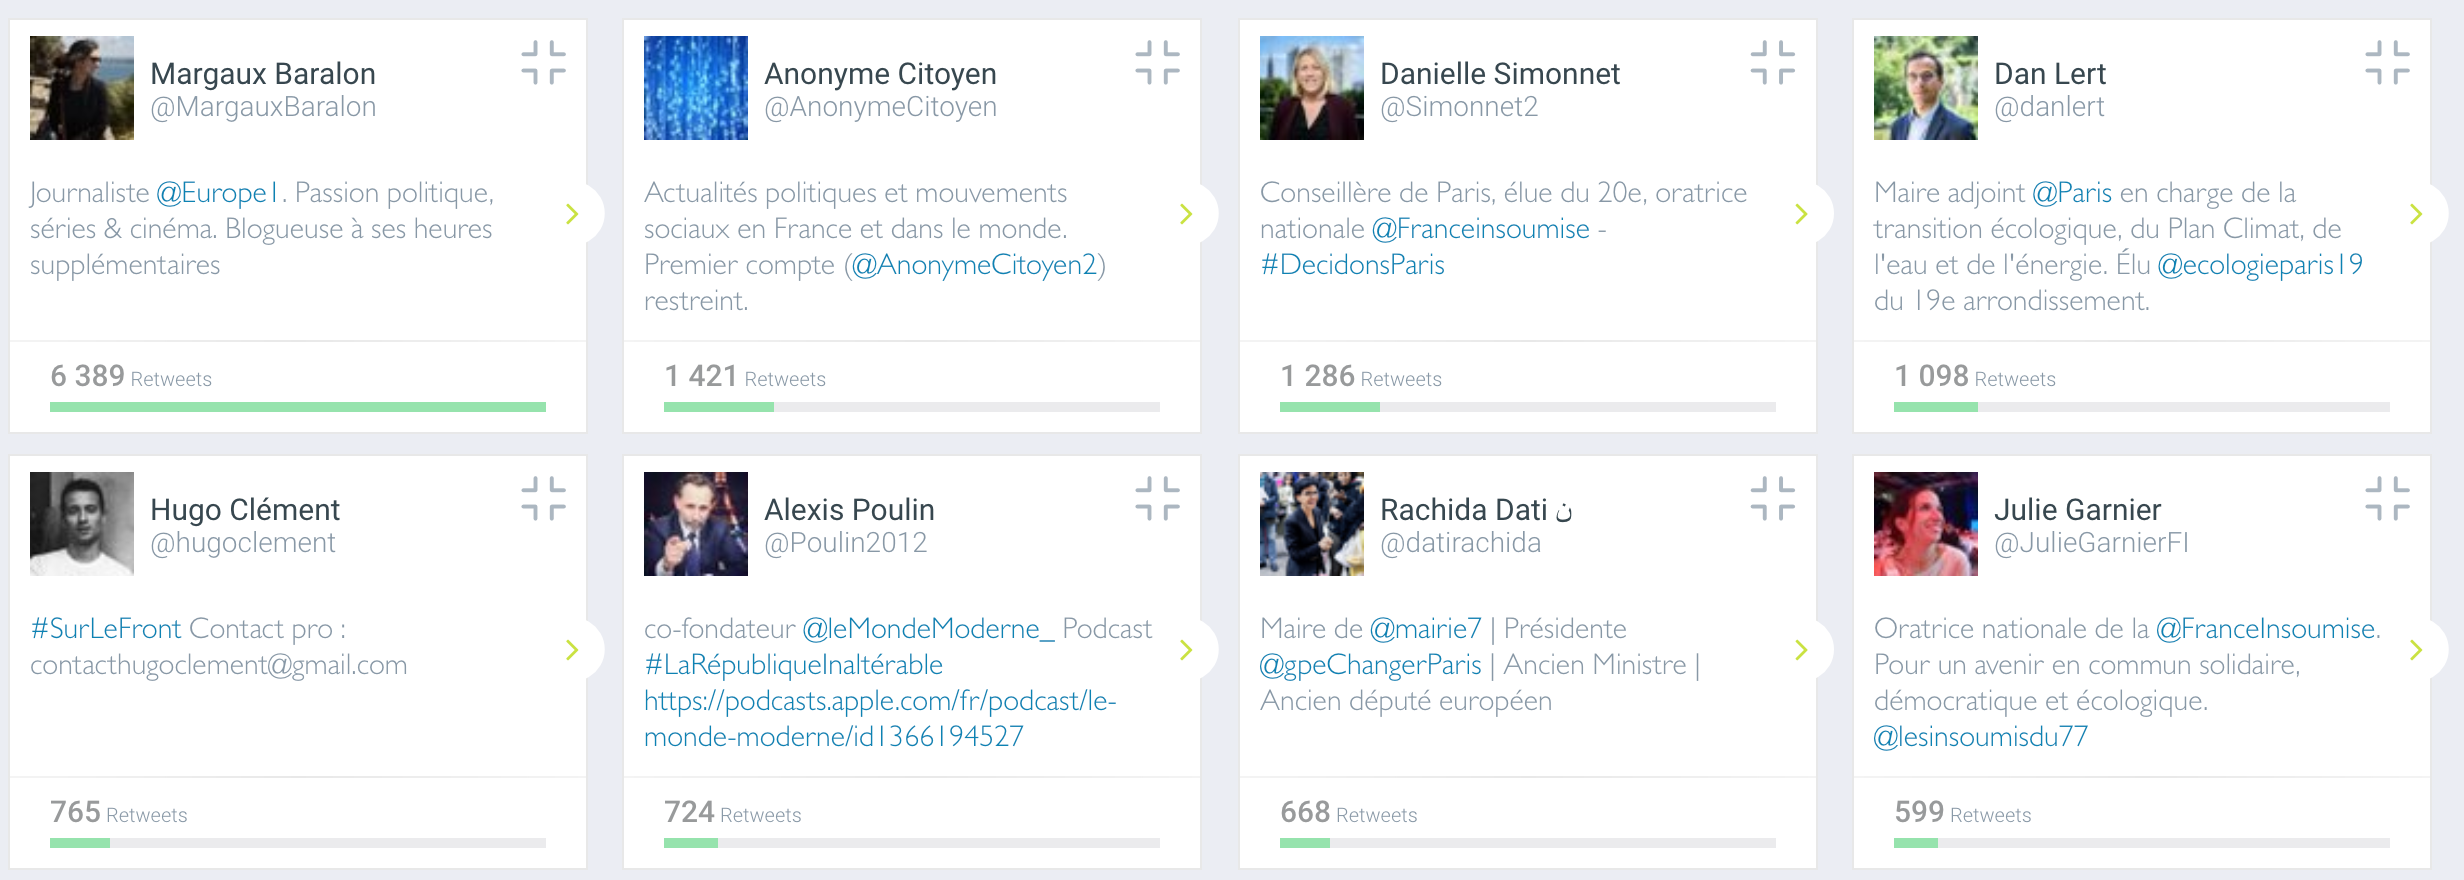 Badbuzz Lafarge : top users les plus influents